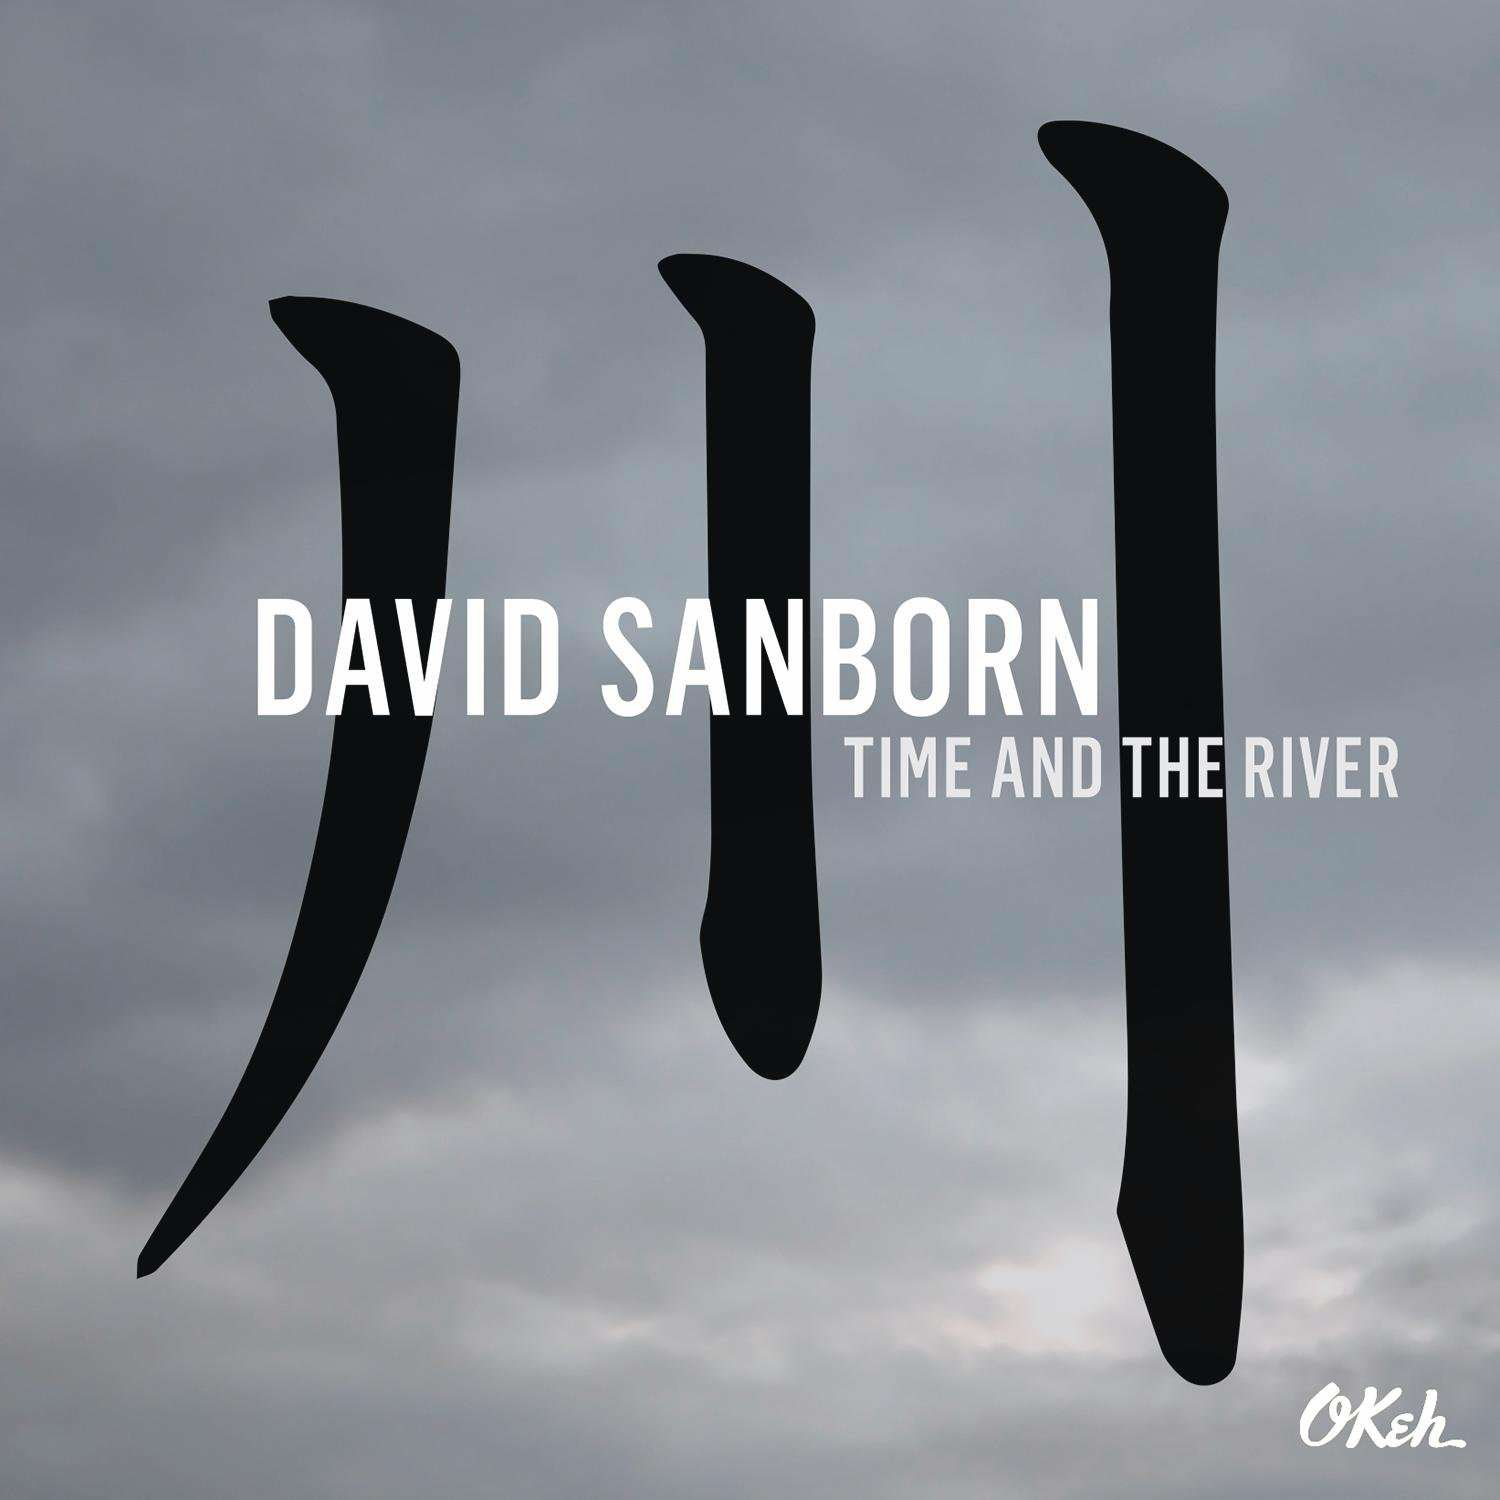 David Sanborn & Marcus Miller - Time & the river